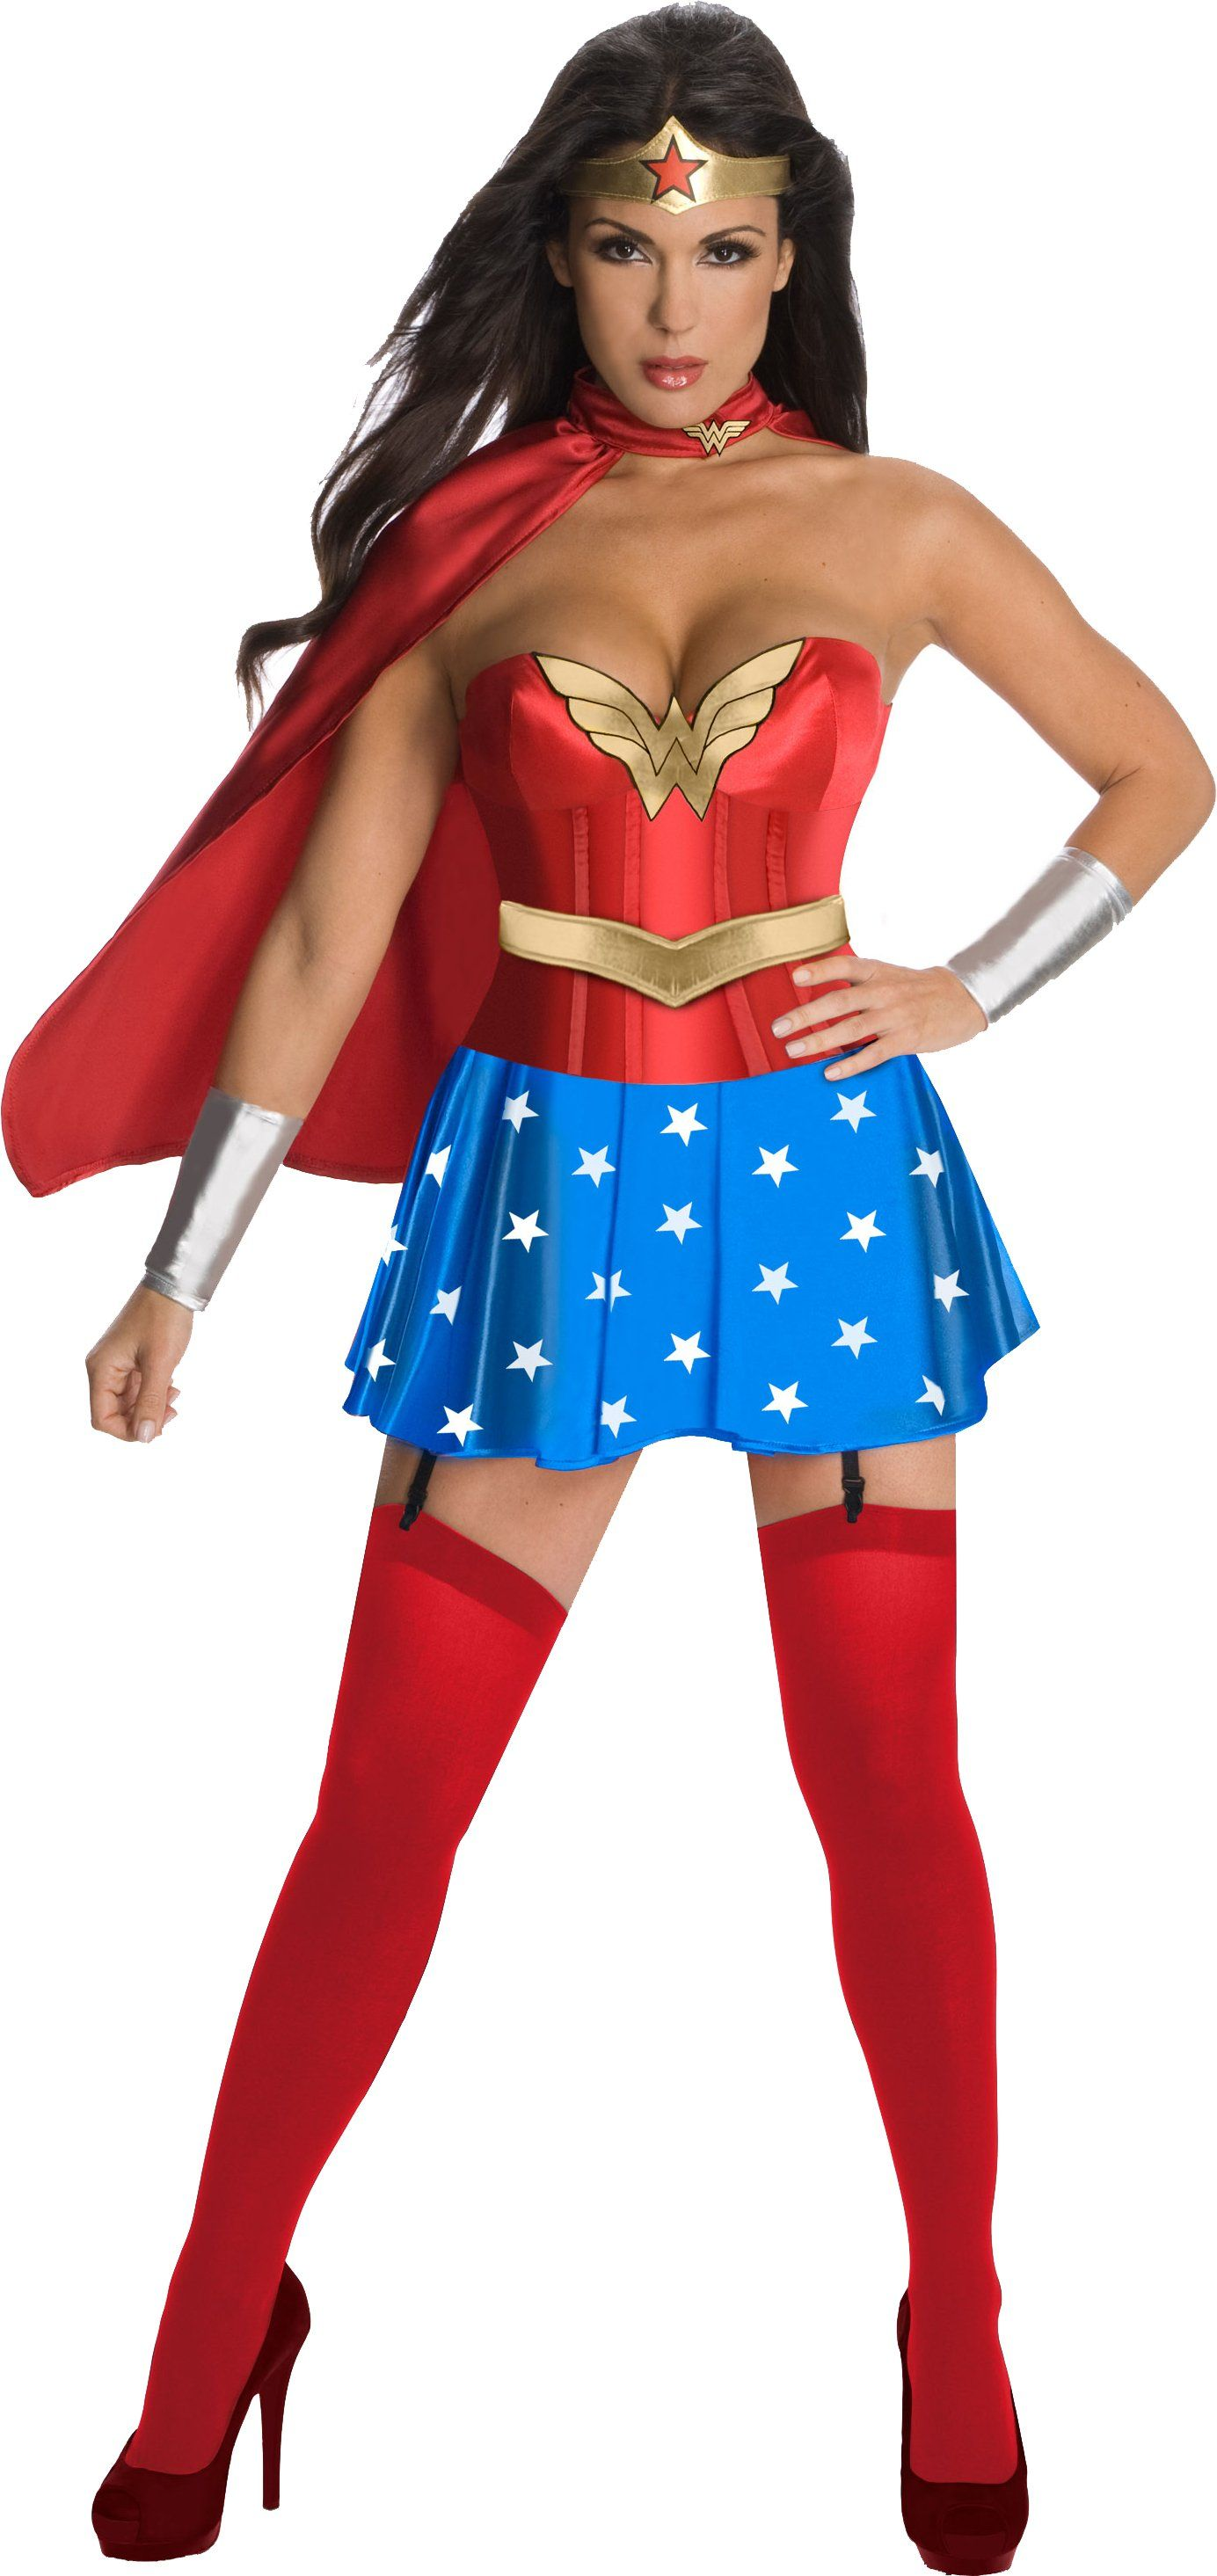 a88f8ab3c2 Wonder Woman Corset Adult Costume in 2019